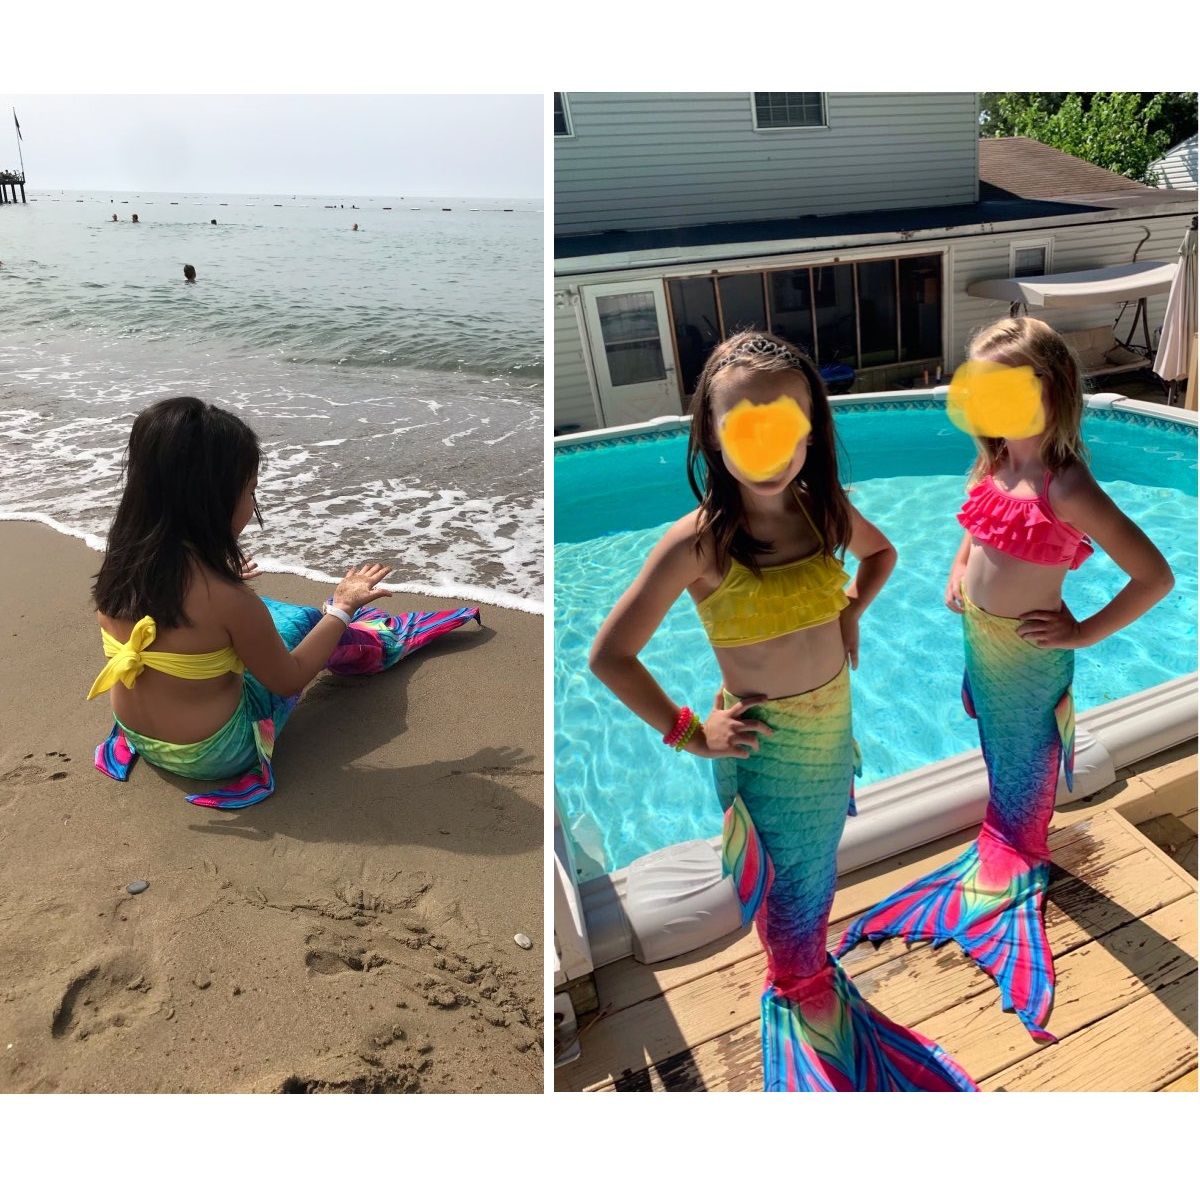 Image 3 - Kids Mermaid Swimsuit Bikini Girls Mermaid Tail with Finned Swimsuit Child's Wear Split Swimsuit Mermaid Tail Clothing Swimwear-in Girls Costumes from Novelty & Special Use